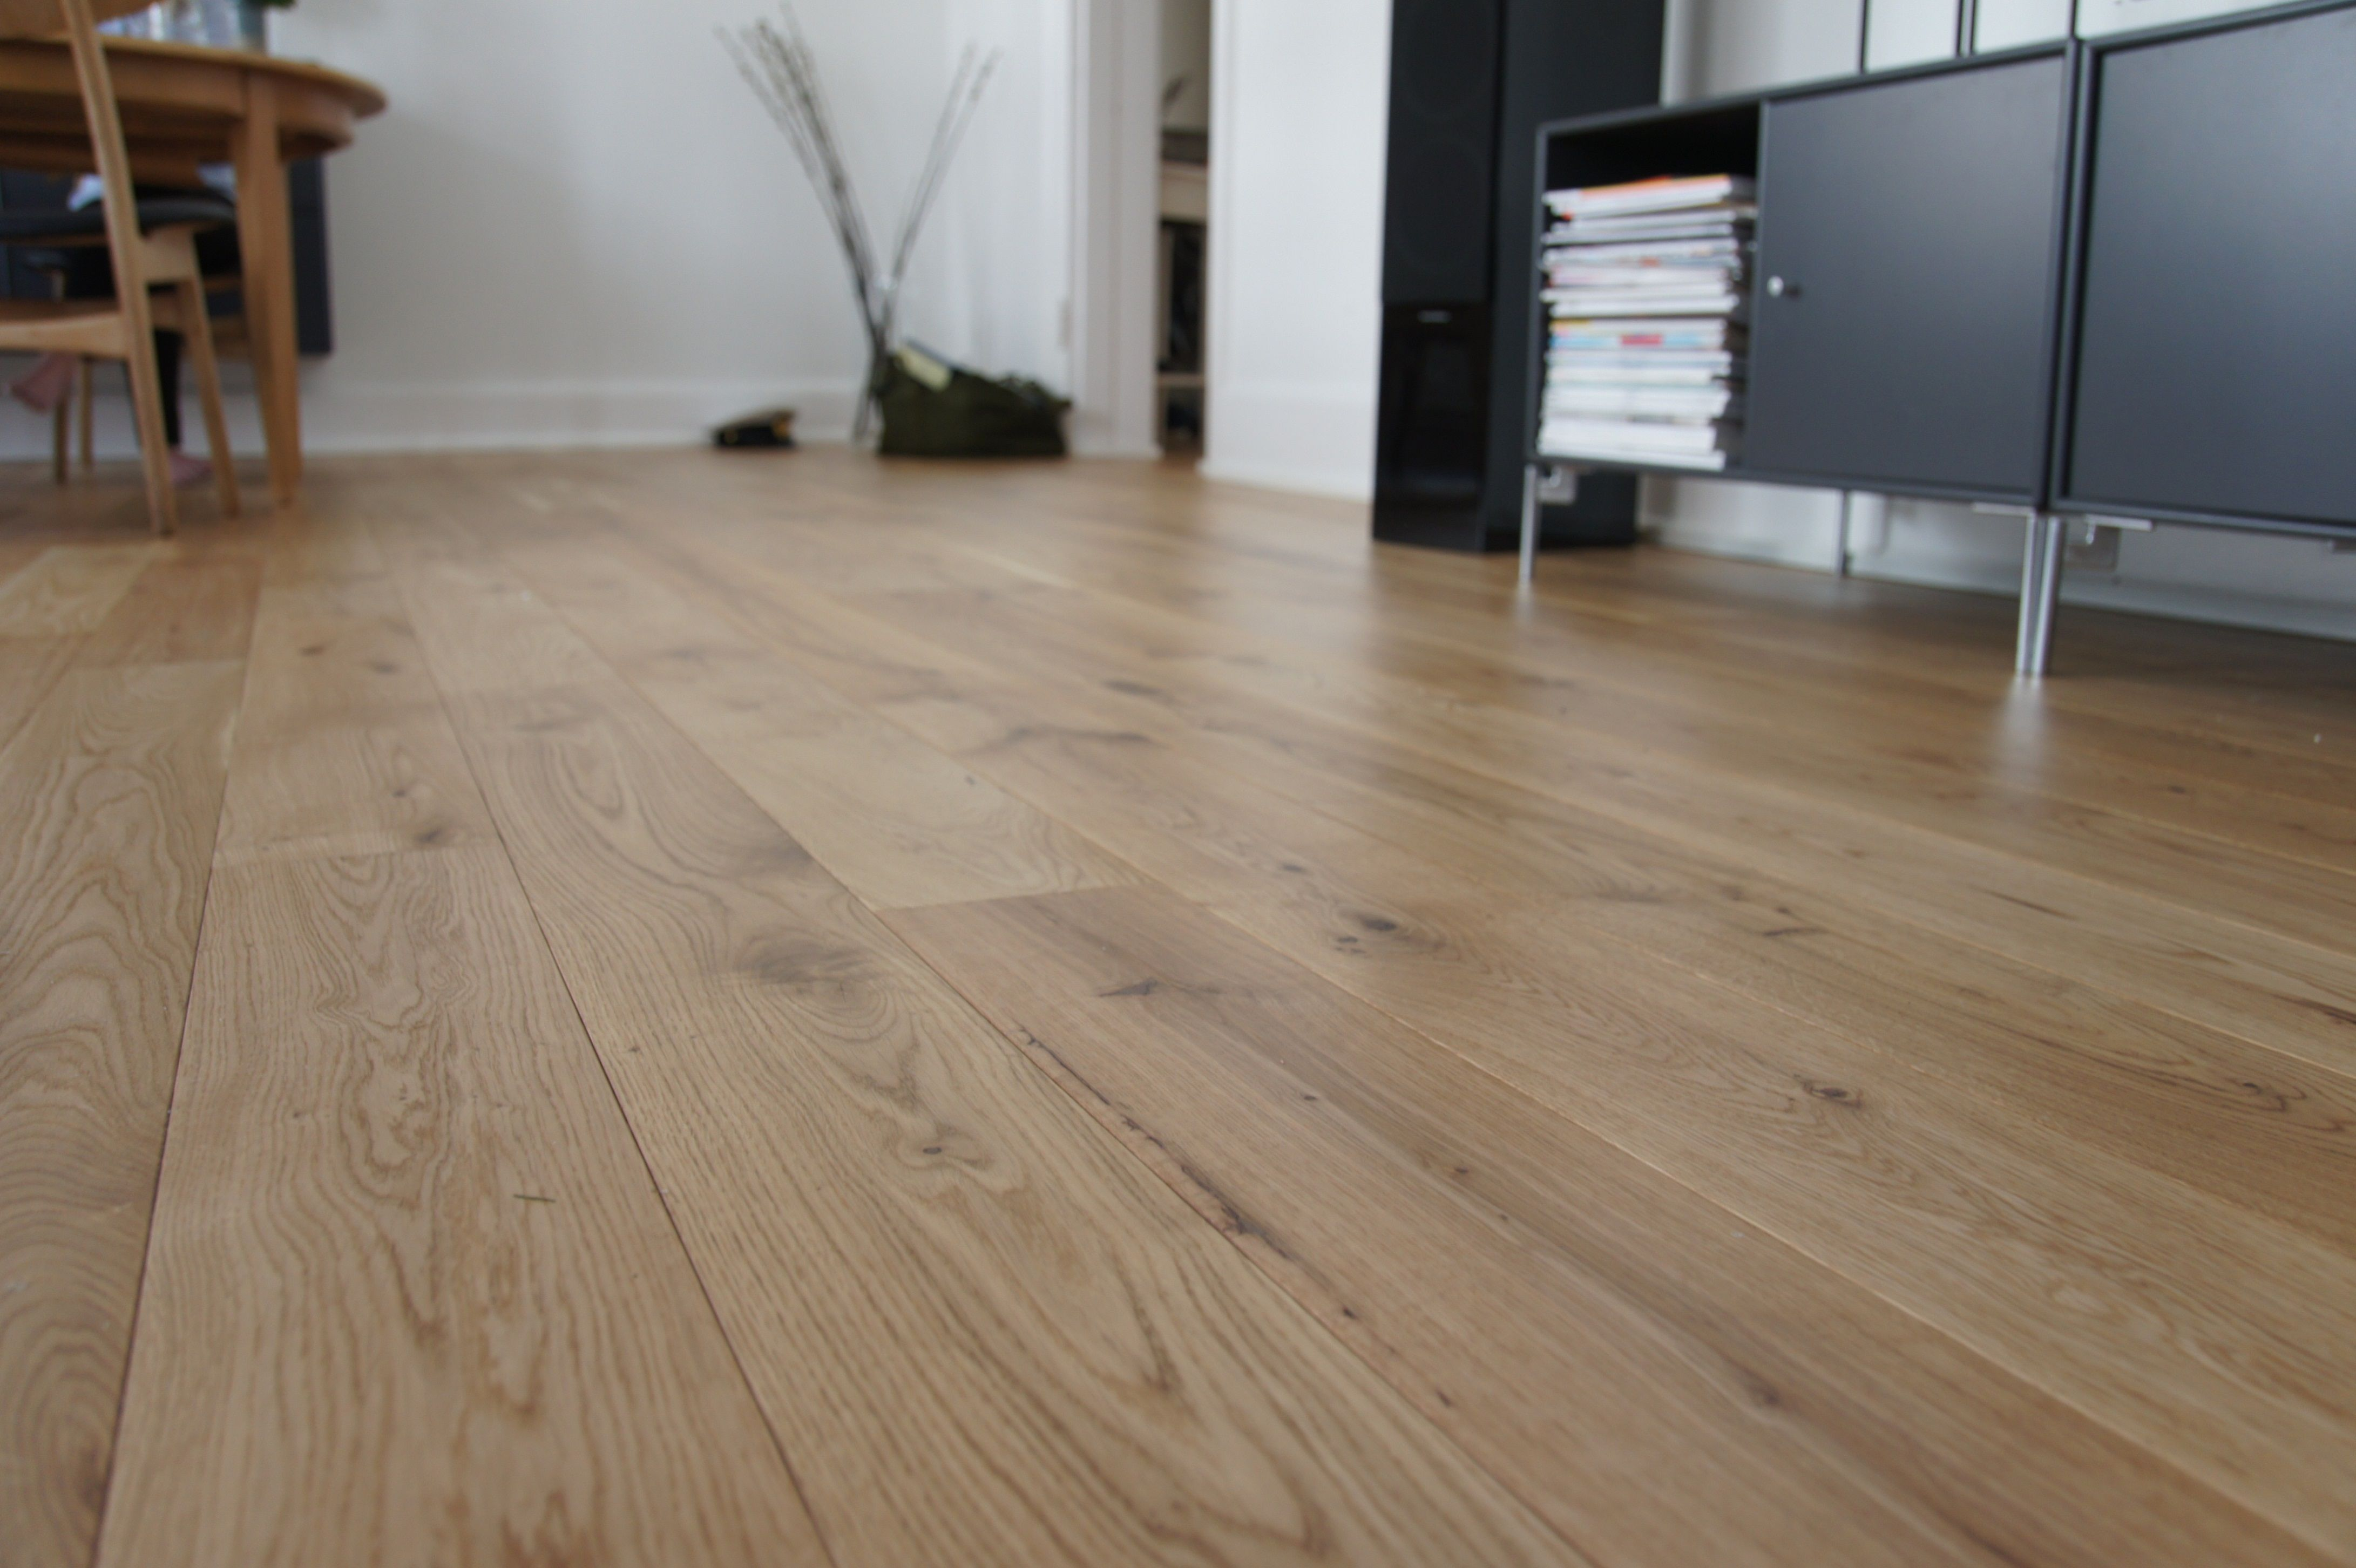 Oak Is A Hardwood Species Characterised By Being Hard Wearing And Therefore Very Suitable For Flooring The Wood Has A Warm Golden Glow An Interesting Flooring